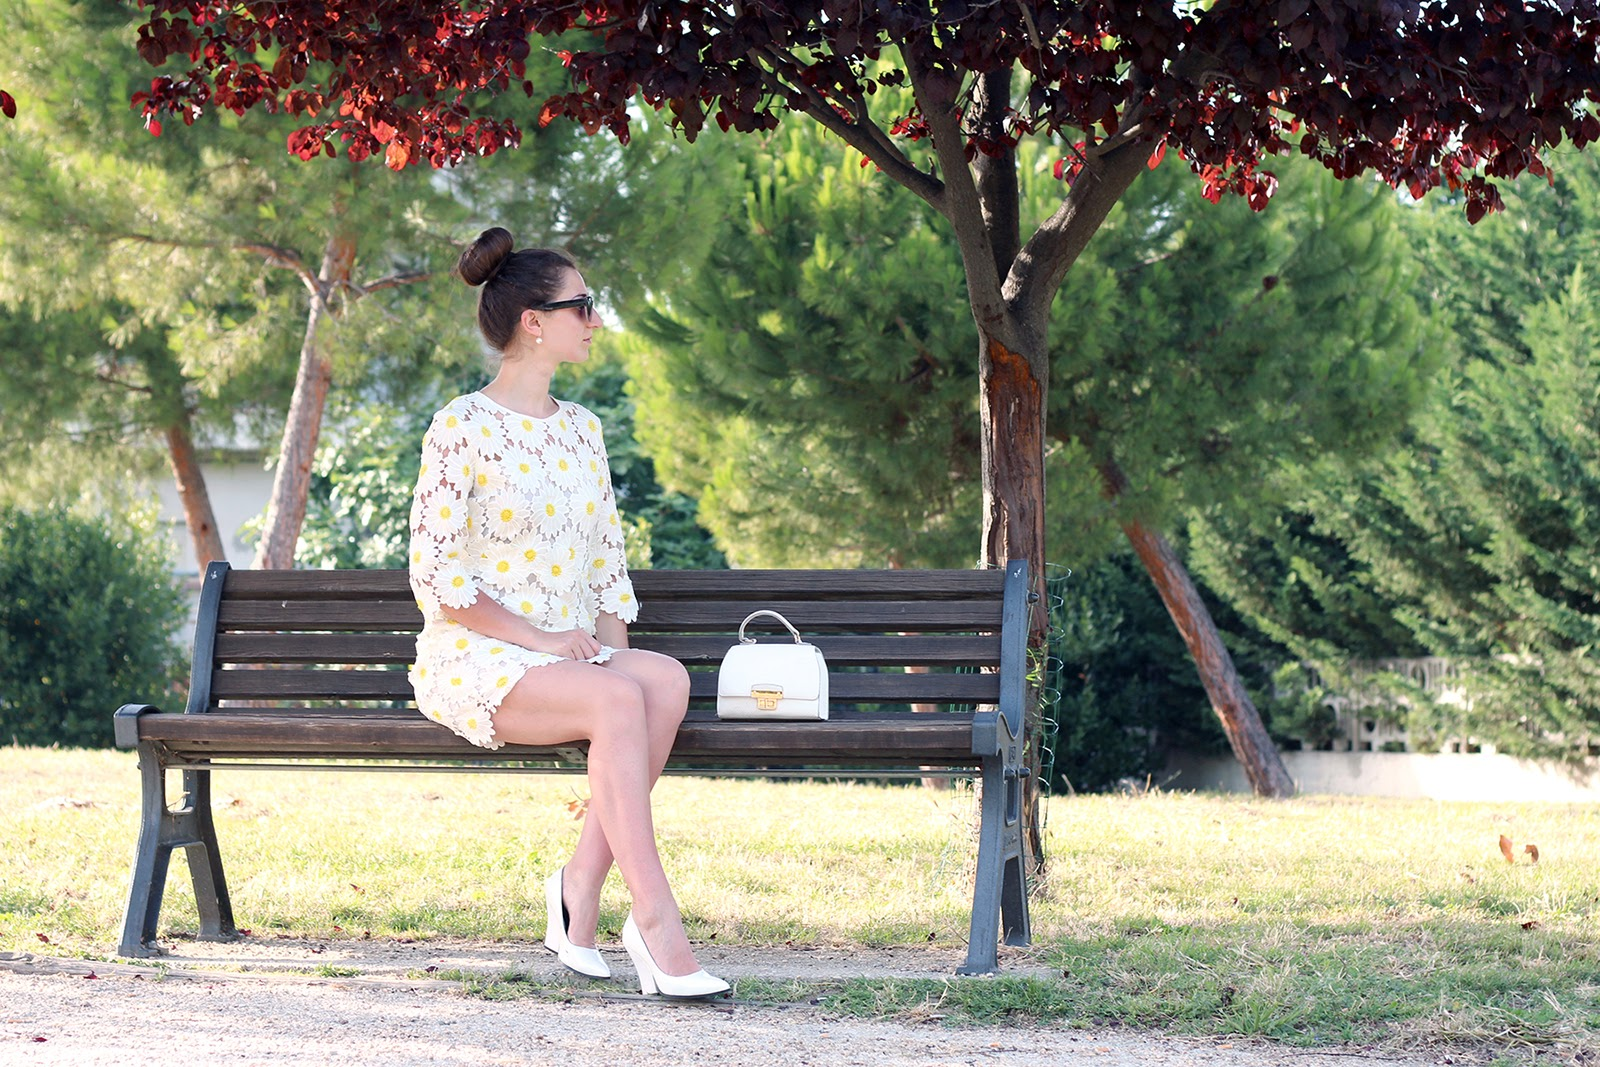 fashion style blogger outfit ootd italian girl italy trend vogue glamour pescara daisy dress chicwish margherite vestito new look bag white heels